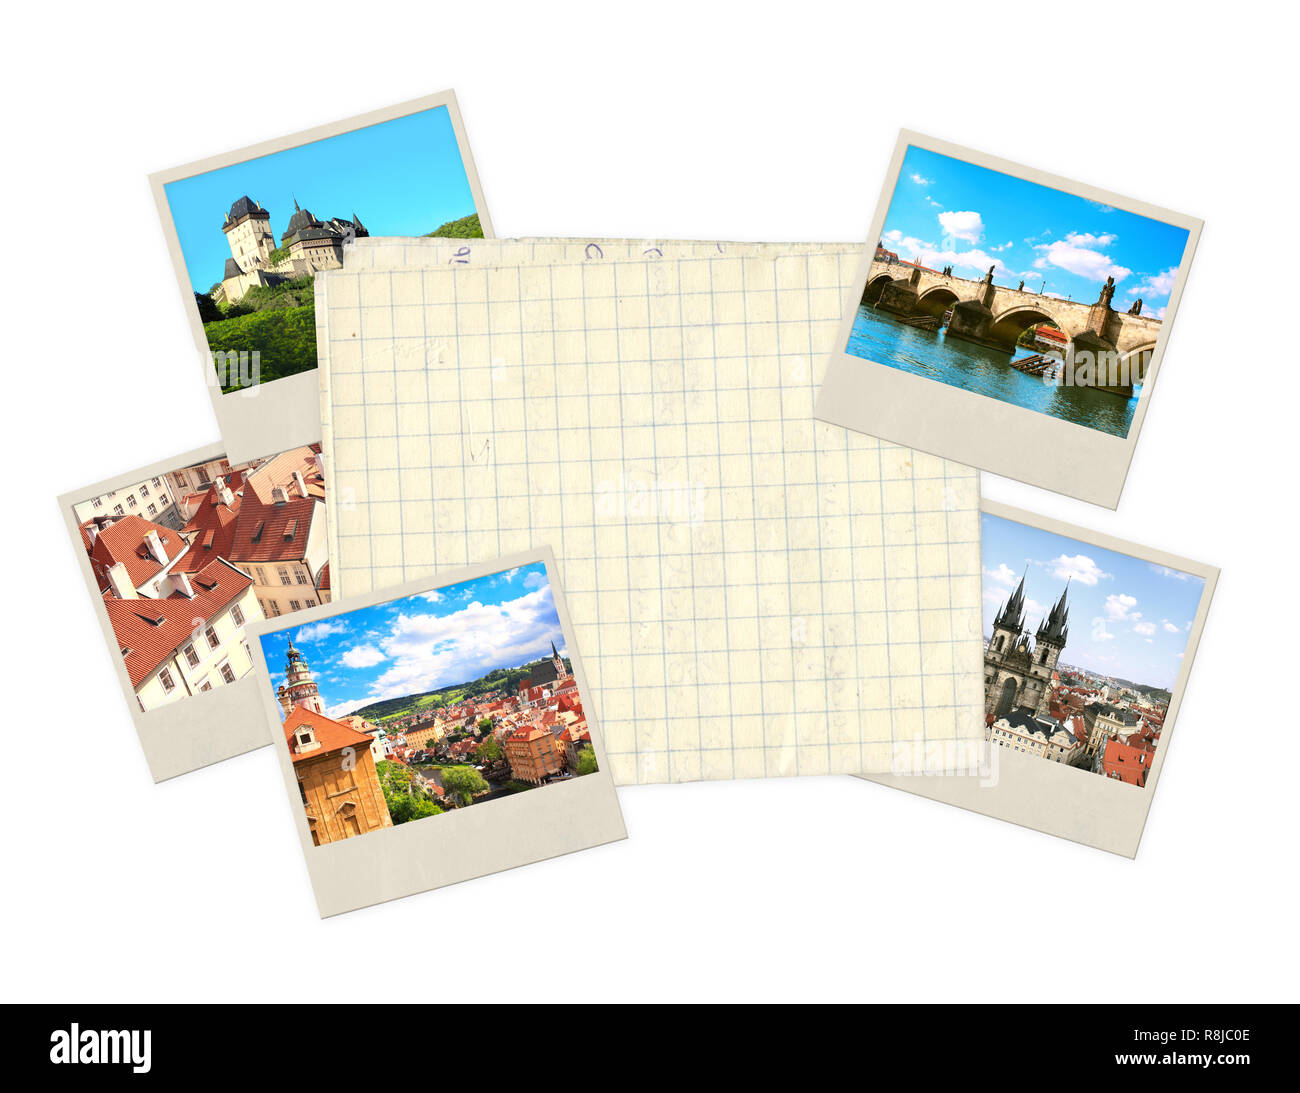 Memories of Czech. Old photos and paper - Stock Image